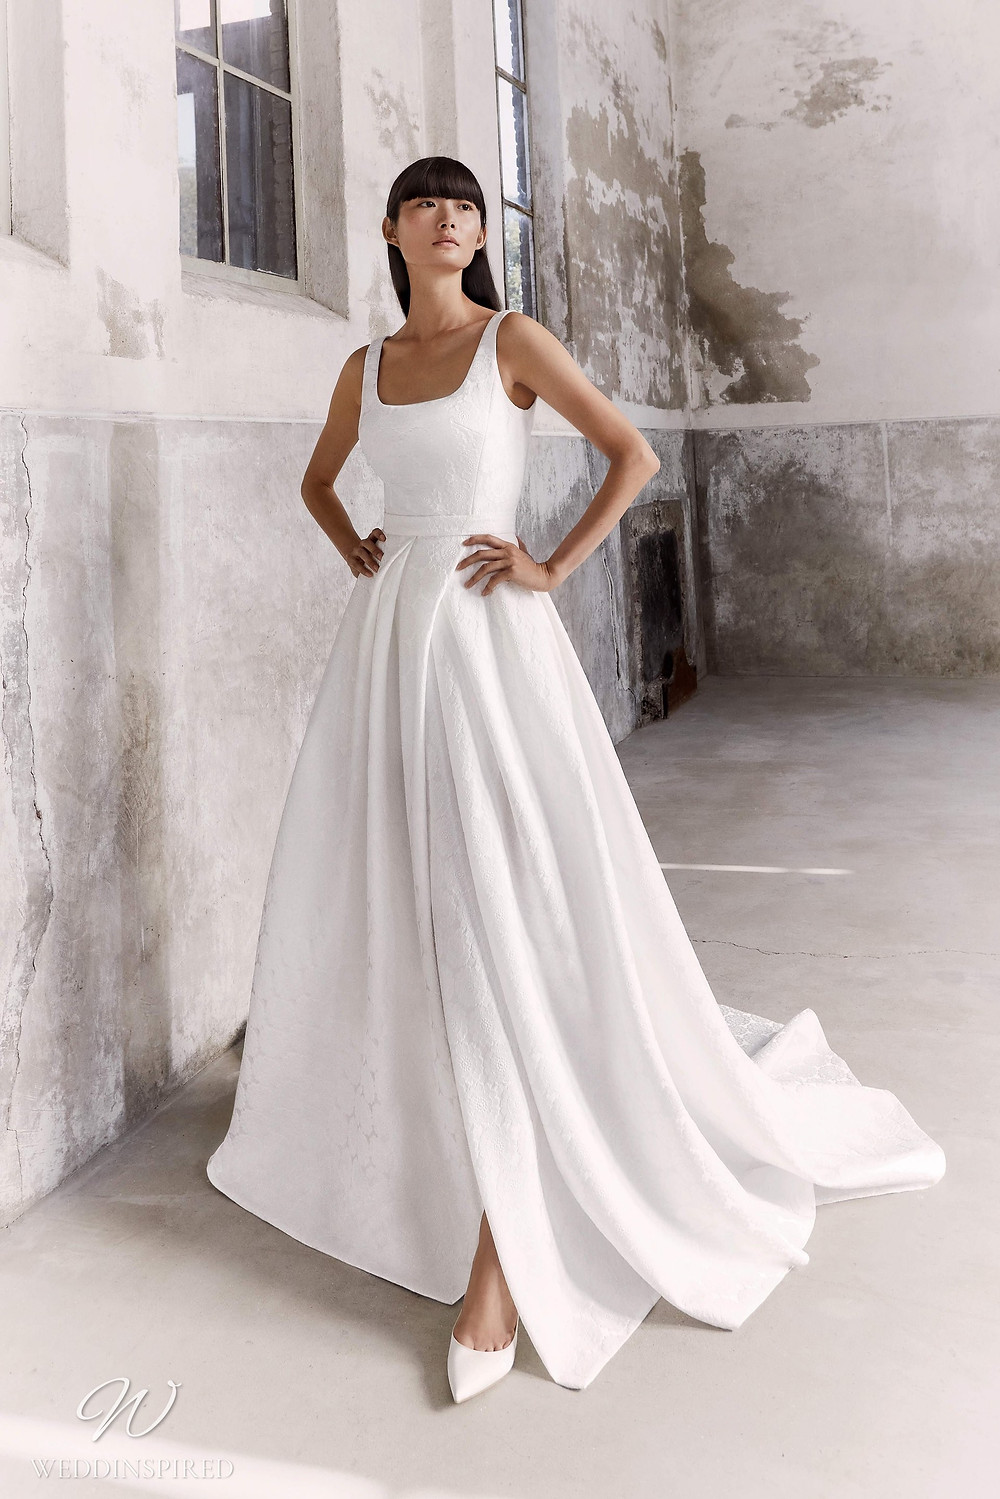 A Viktor & Rolf Fall/Winter 2021 simple A-line wedding dress with straps and a square neckline